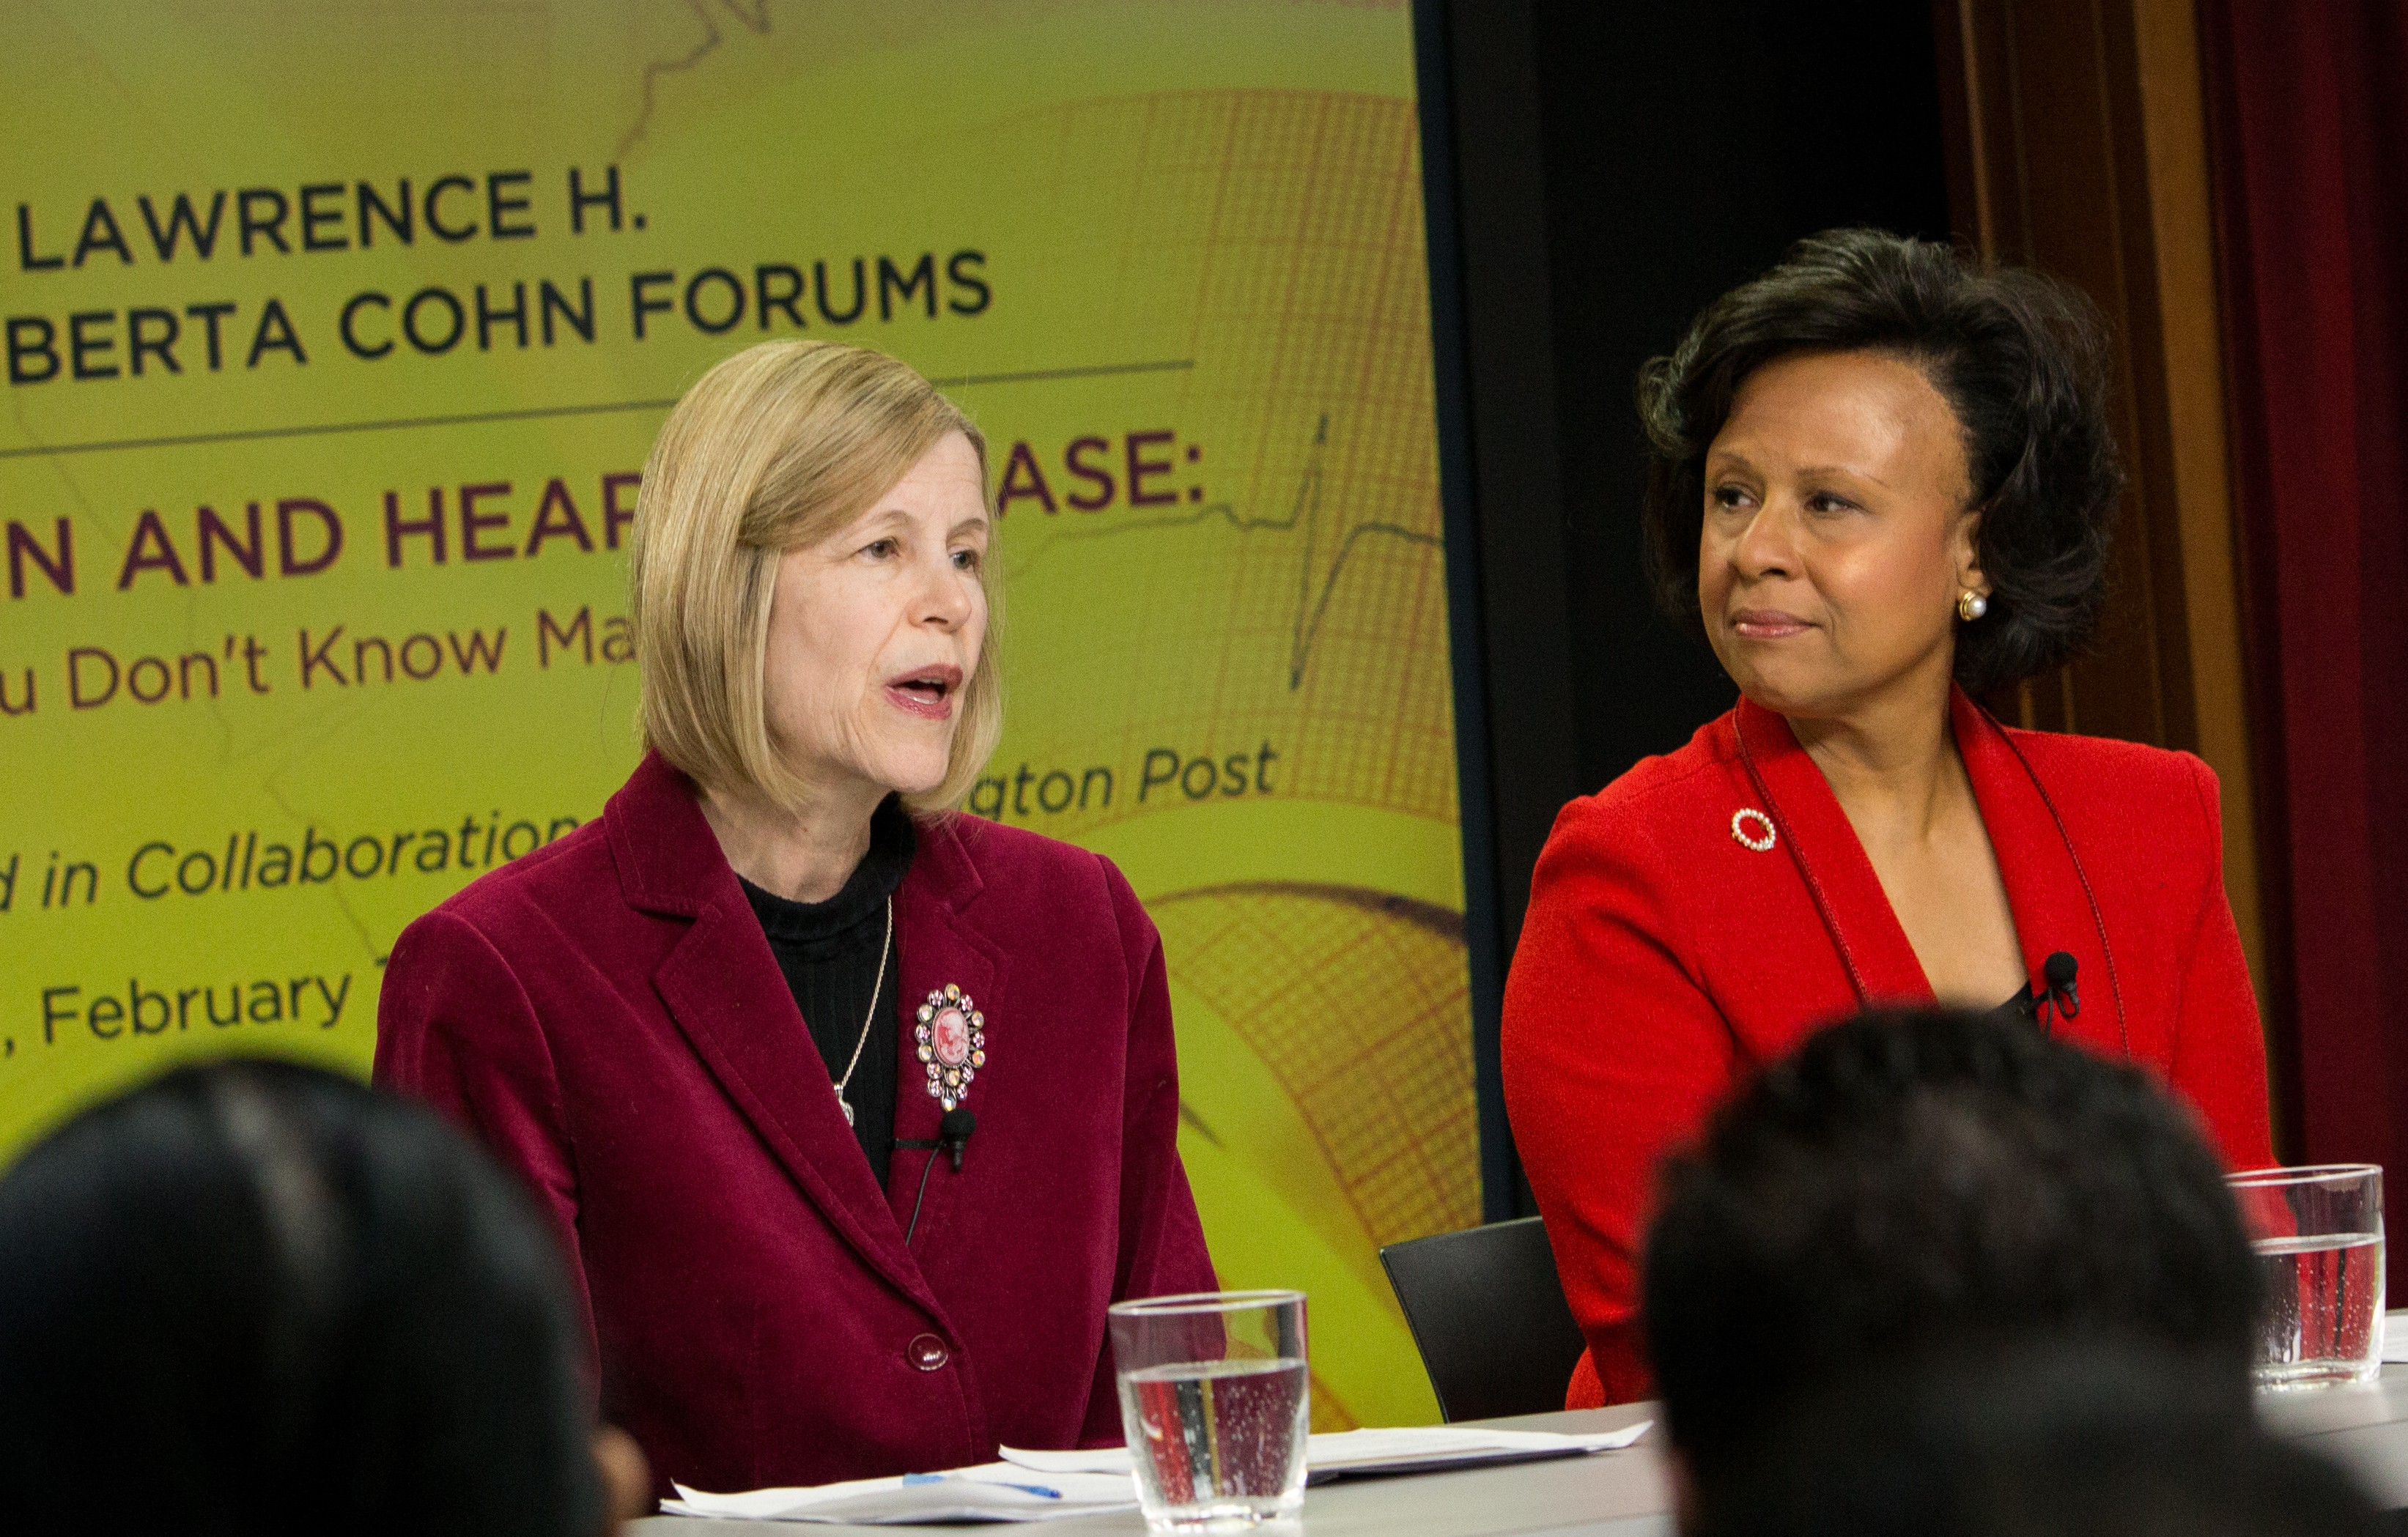 From left: Panelists JoAnn Manson and Paula Johnson